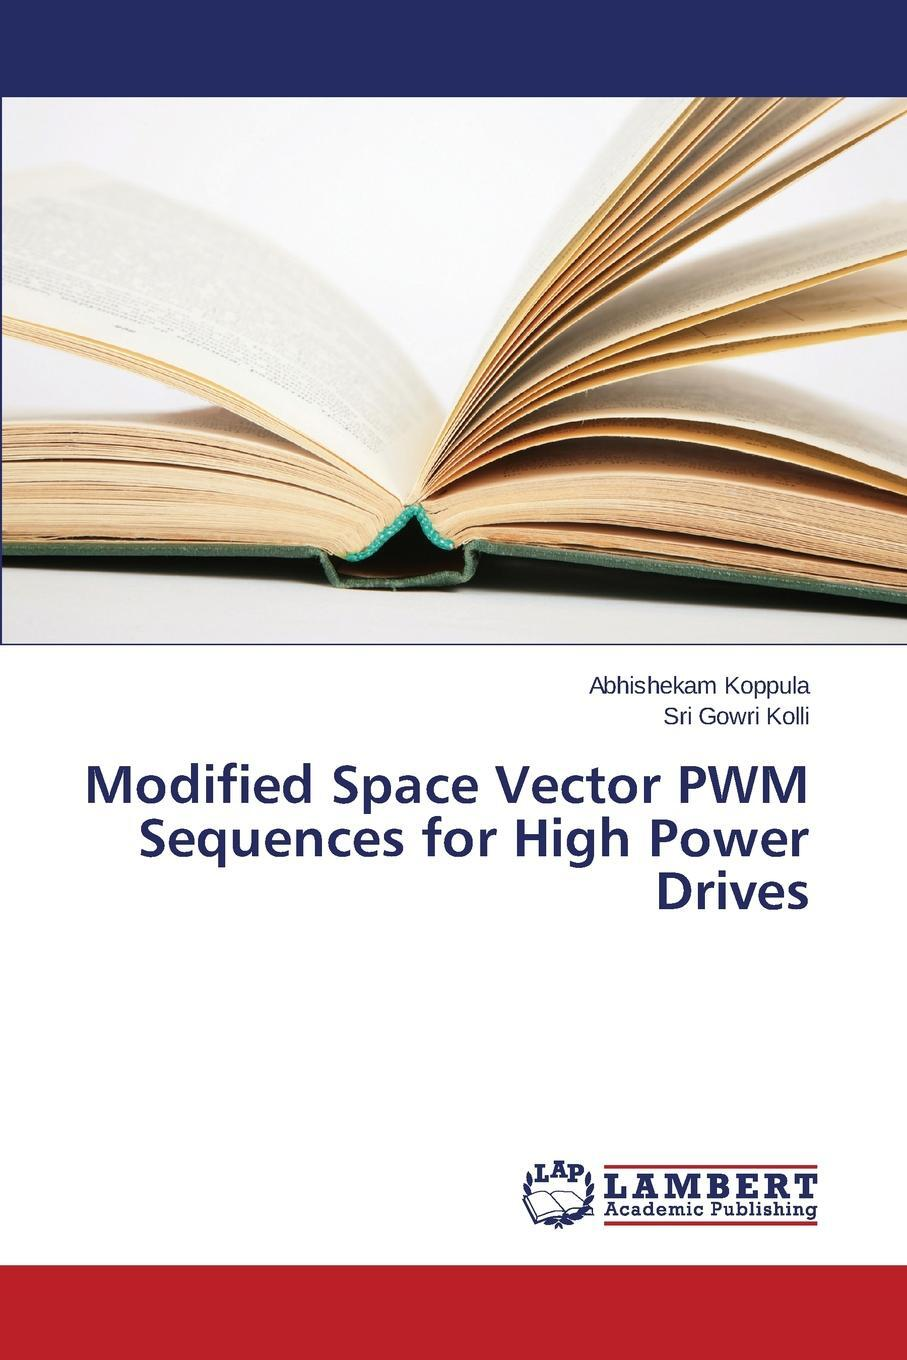 Modified Space Vector PWM Sequences for High Power Drives